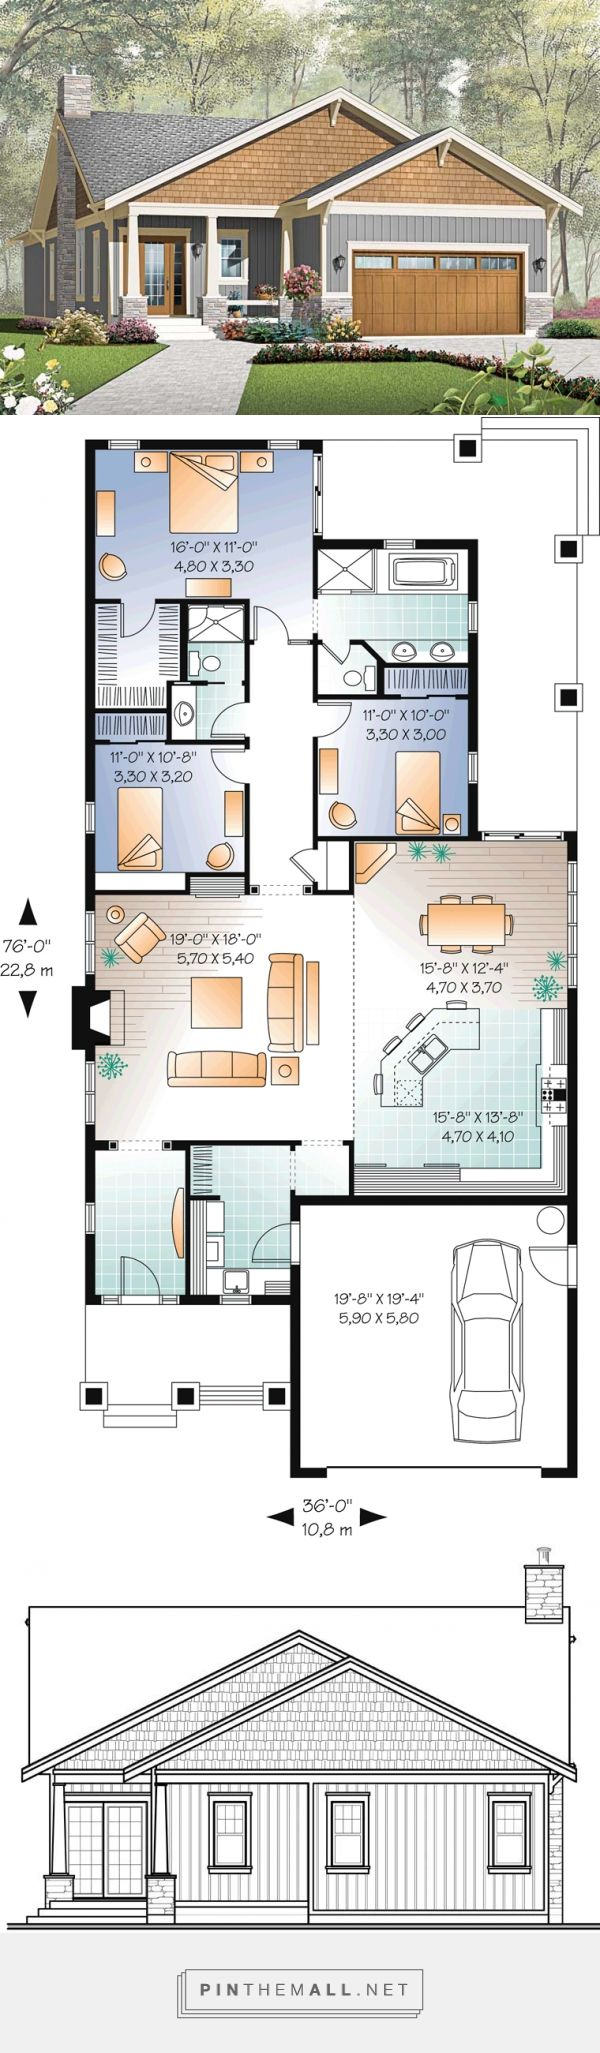 25 best house plans ideas on pinterest 4 bedroom house plans blue open plan bathrooms and country house plans - Housing Plans